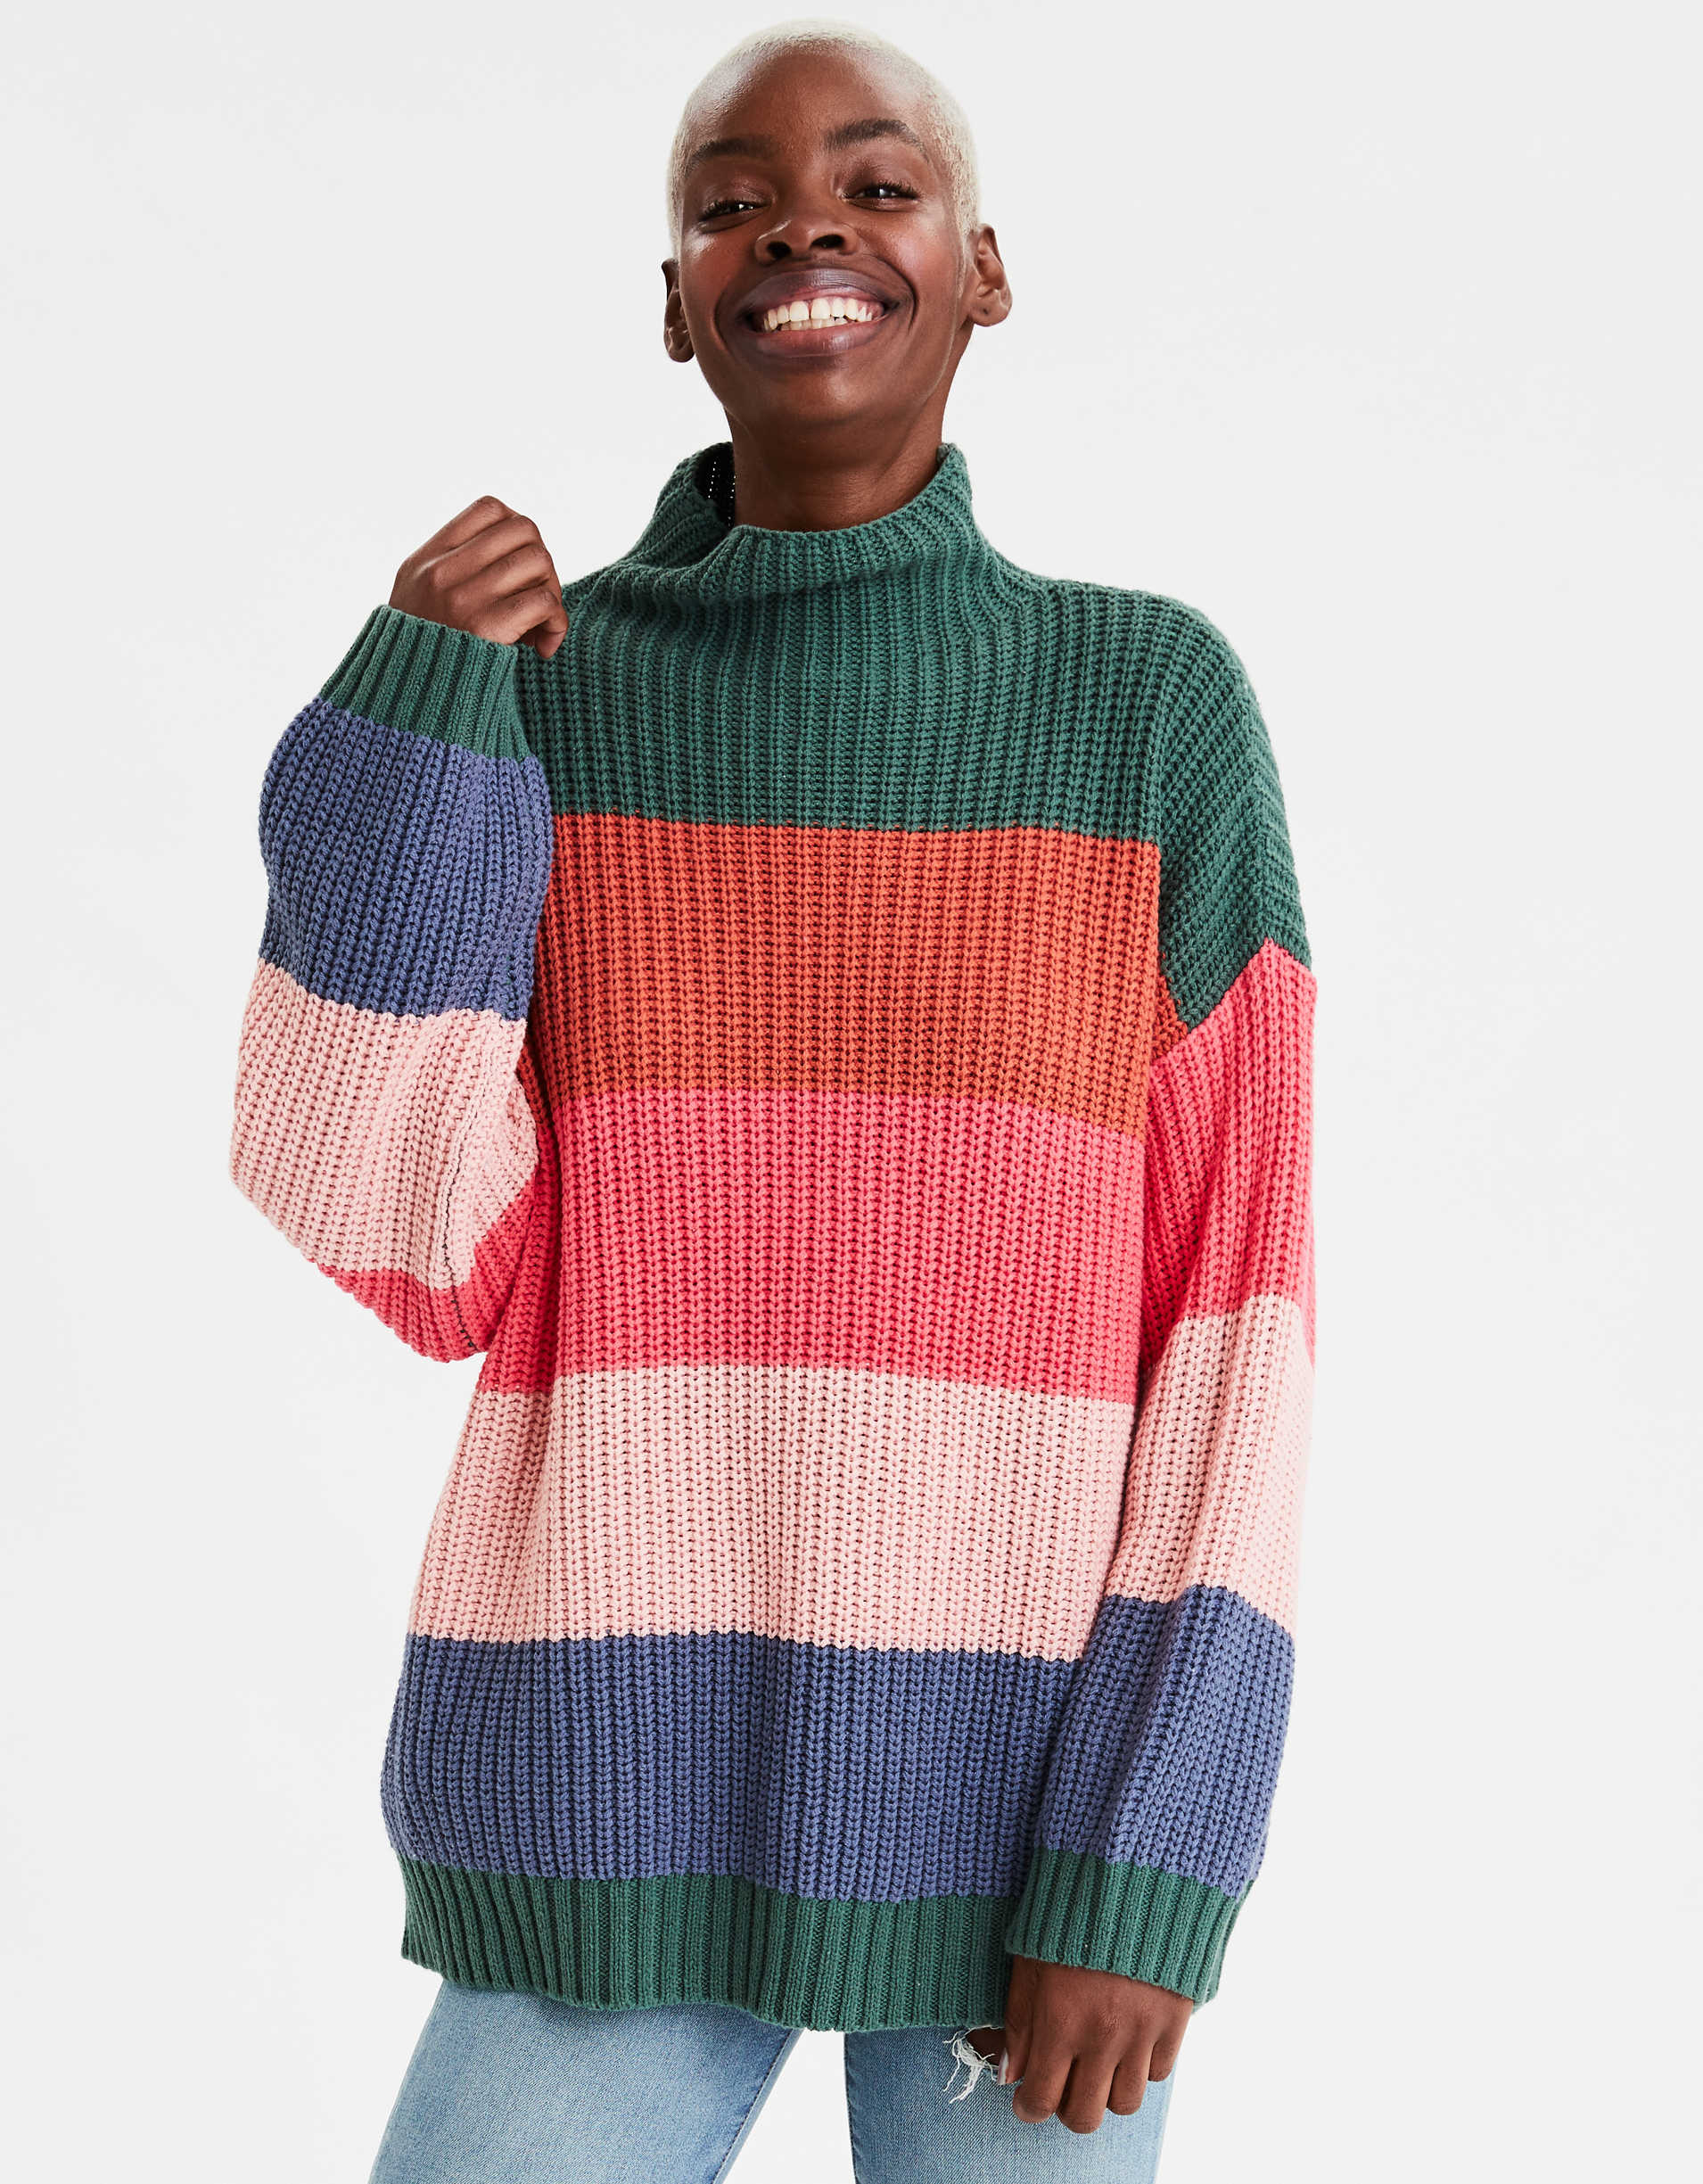 AE Mock Neck Oversized Sweater, WAS $49.95 - is now $14.99 - 69% OFF @ae.com